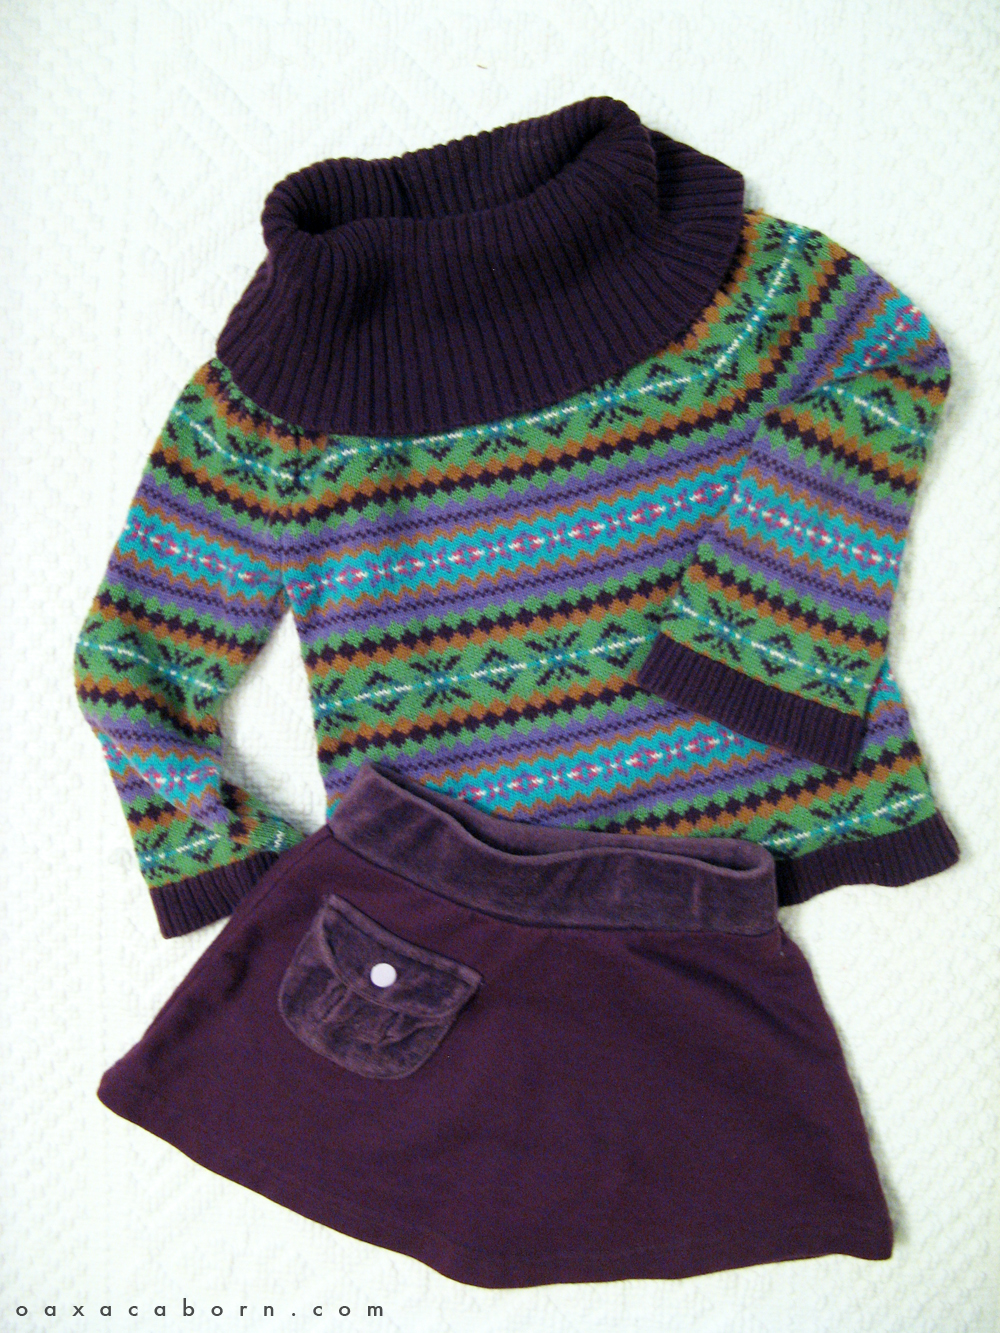 Little Style - Toddler Sweater and Skirt - Fair Isle - via the Oaxacaborn dot com blog